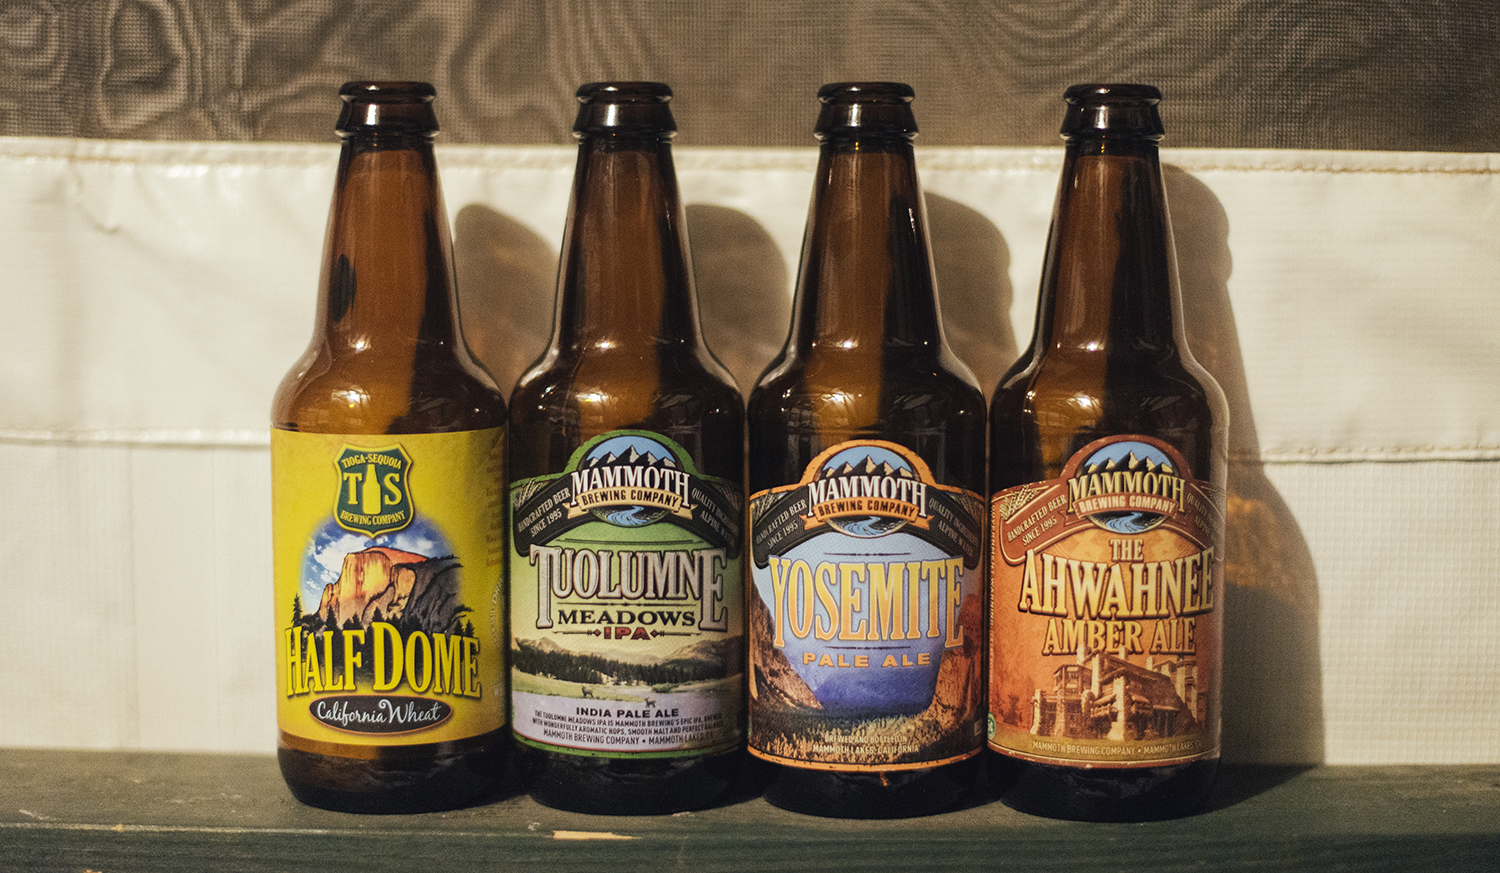 I became a quick fan of Tioga-Sequoia Brewing Co's Half Dome California Wheat beer, and Jake sampled the Mammoth Brewing Co's Yosemite ales and IPA - this was my collection of Yosemite-themed beer bottles by the end of the week.